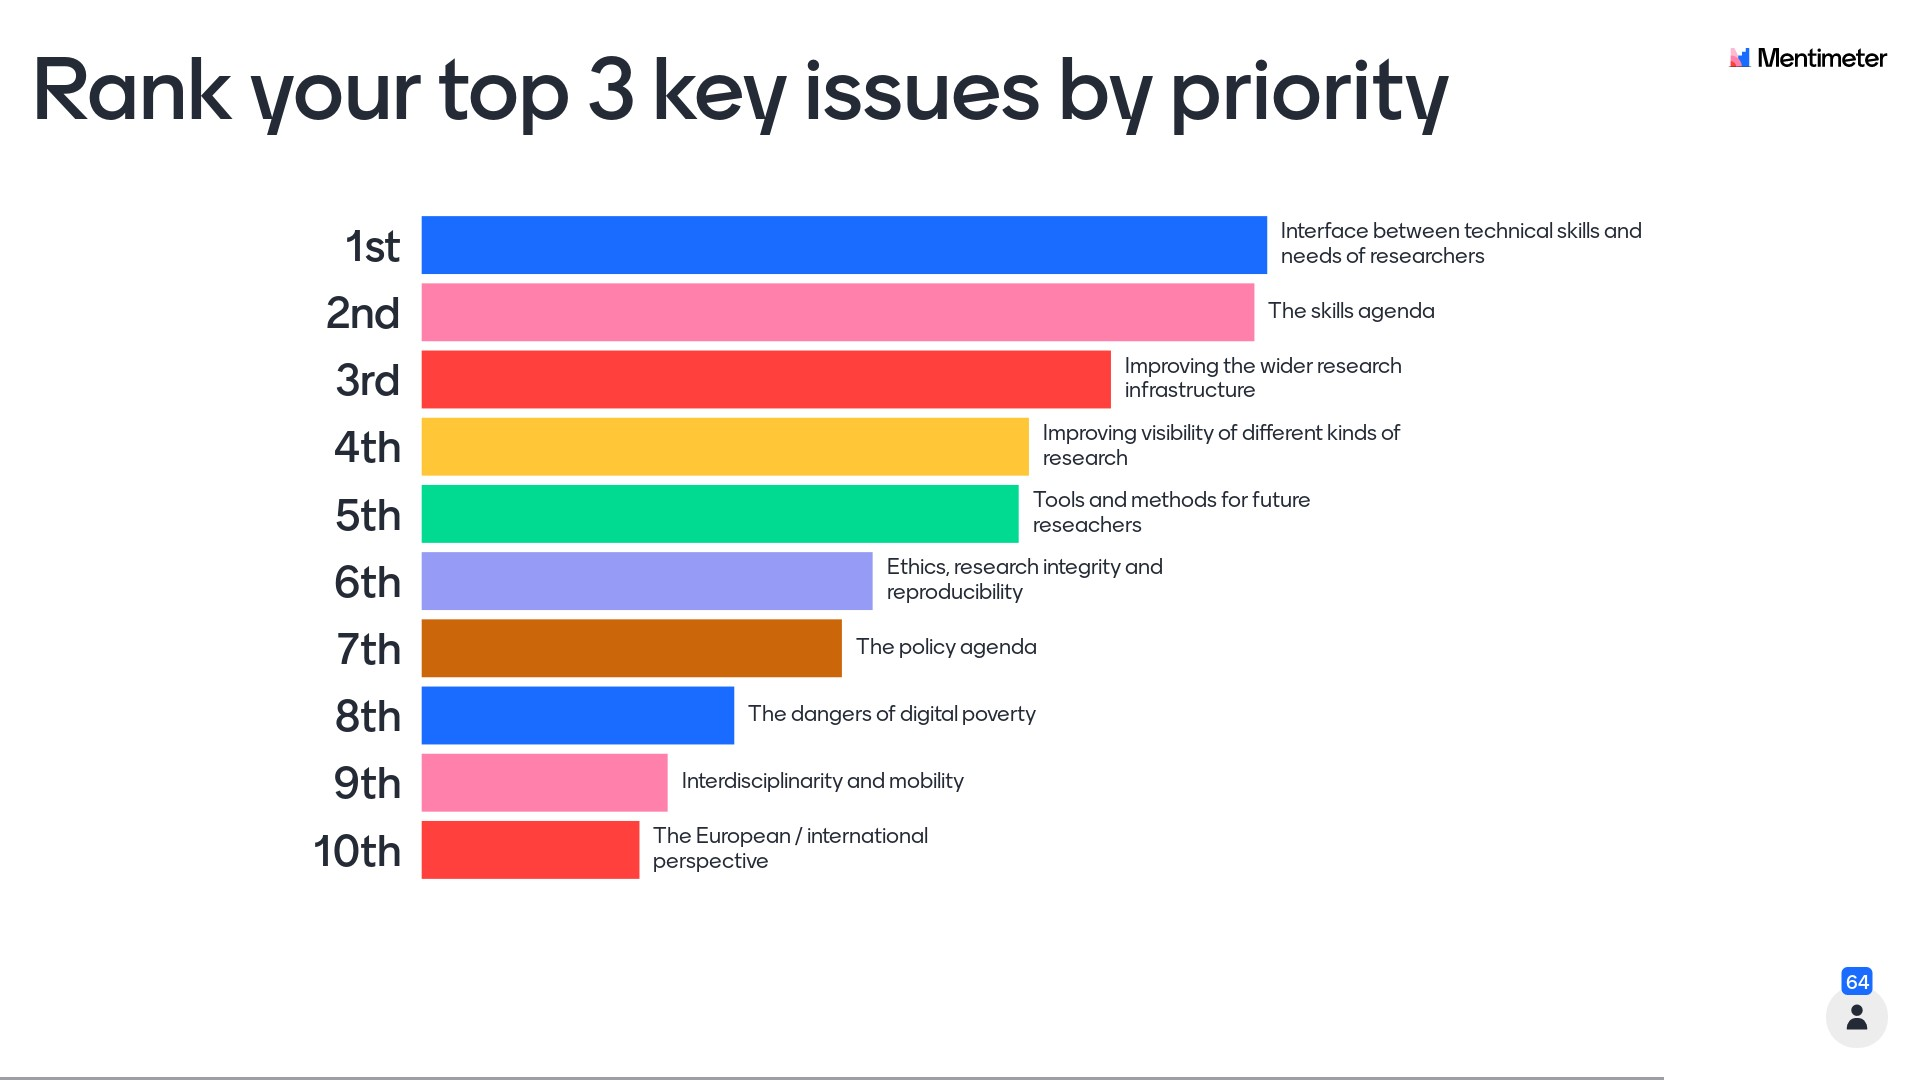 This images shows the ranking of top 3 key issues by priority: 1st Interface between technical skills and needs of researchers, 2nd The skills agenda, 3rd Improving the wider research infrastructure, 4th Improving the visibility of different kinds of research, 5th Tools and methods for future researchers, 6th Ethics, research integrity and reproducibility, 7th The policy agenda, 8th The dangers of digital poverty, 9th Interdisciplinarity and mobility, 10th The European / international perspective